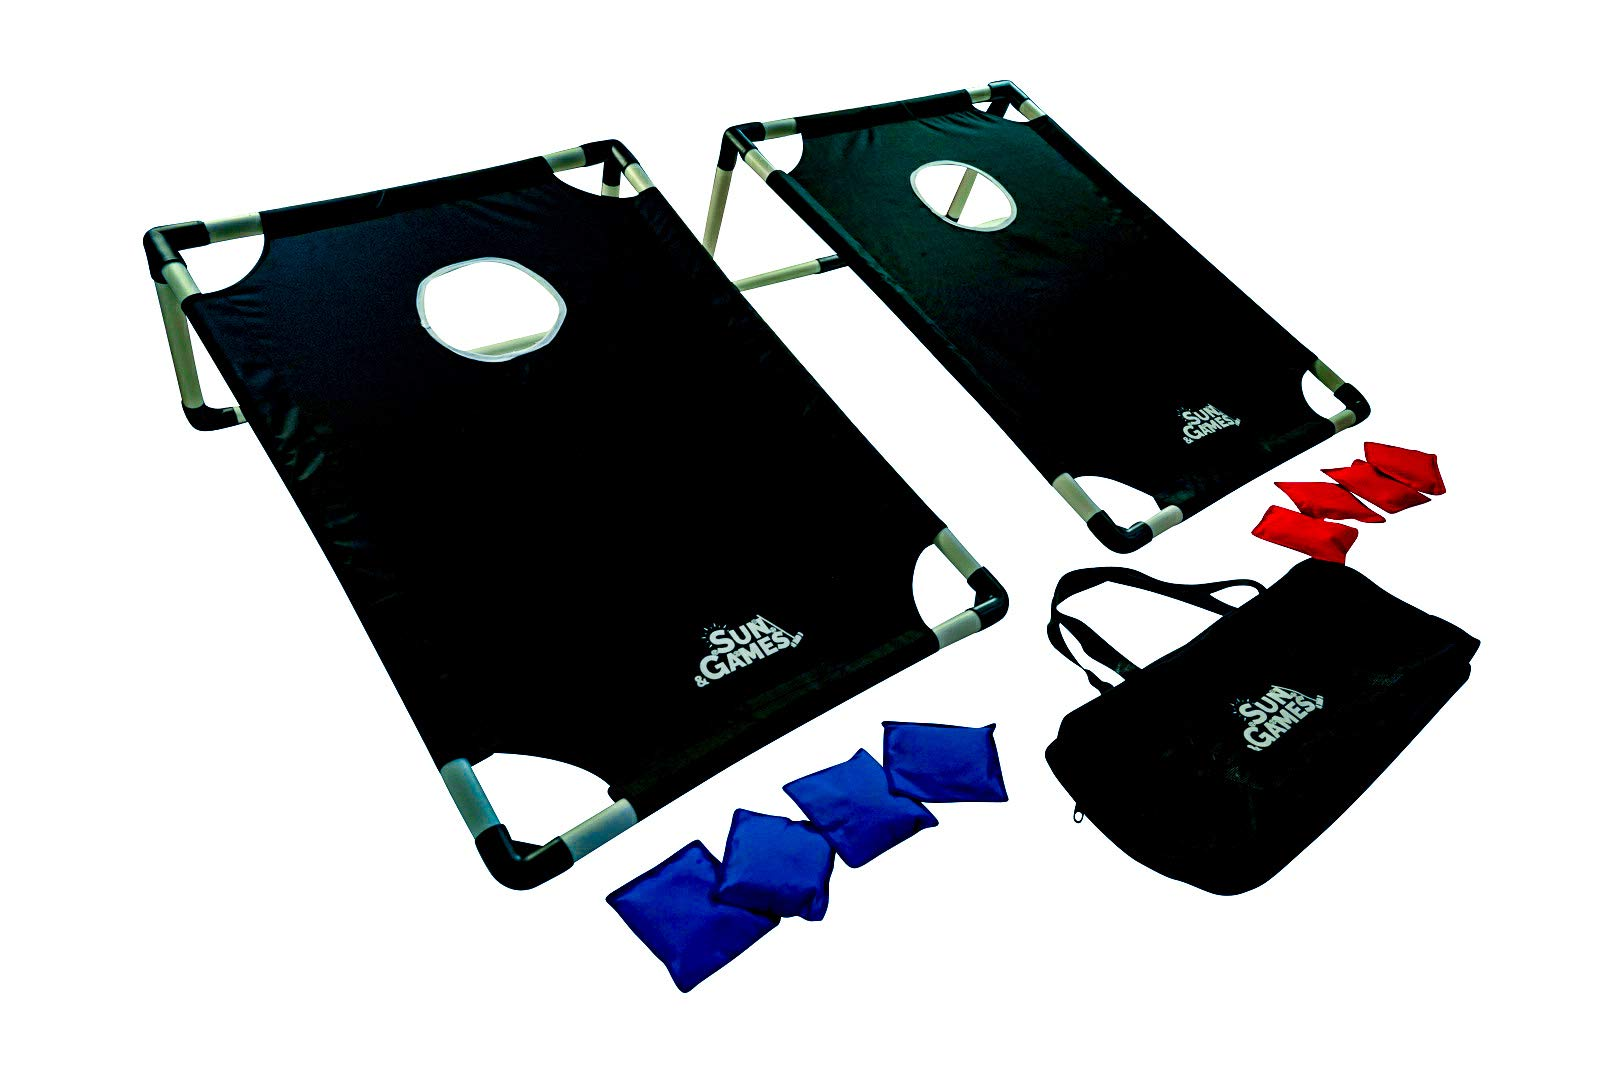 Portable PVC Cornhole Game Set Made with All-Weather, Tear-Resistant Fabric | 8 Beanbags and Carry Case | Tailgate Size